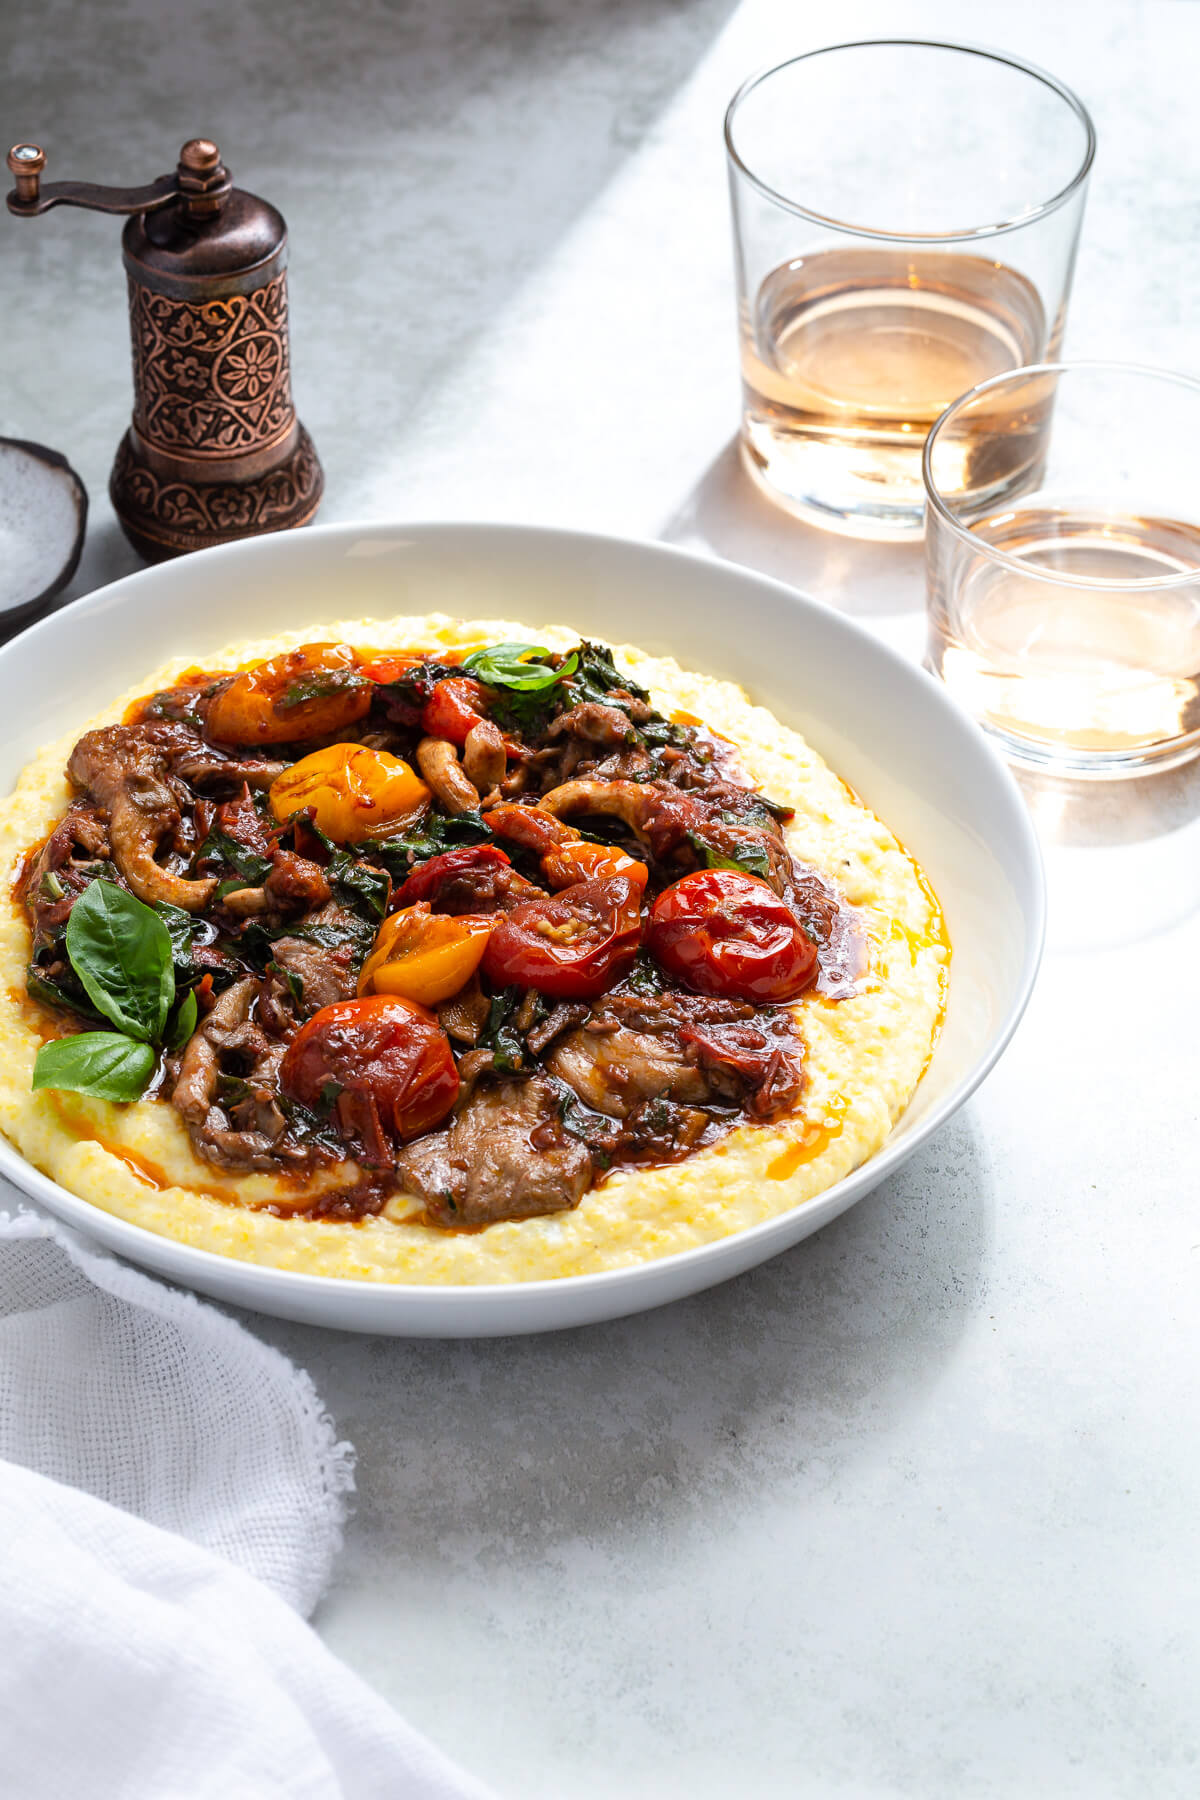 Some cherry tomato ragout and polenta in a serving dish next to some glasses of rosé.